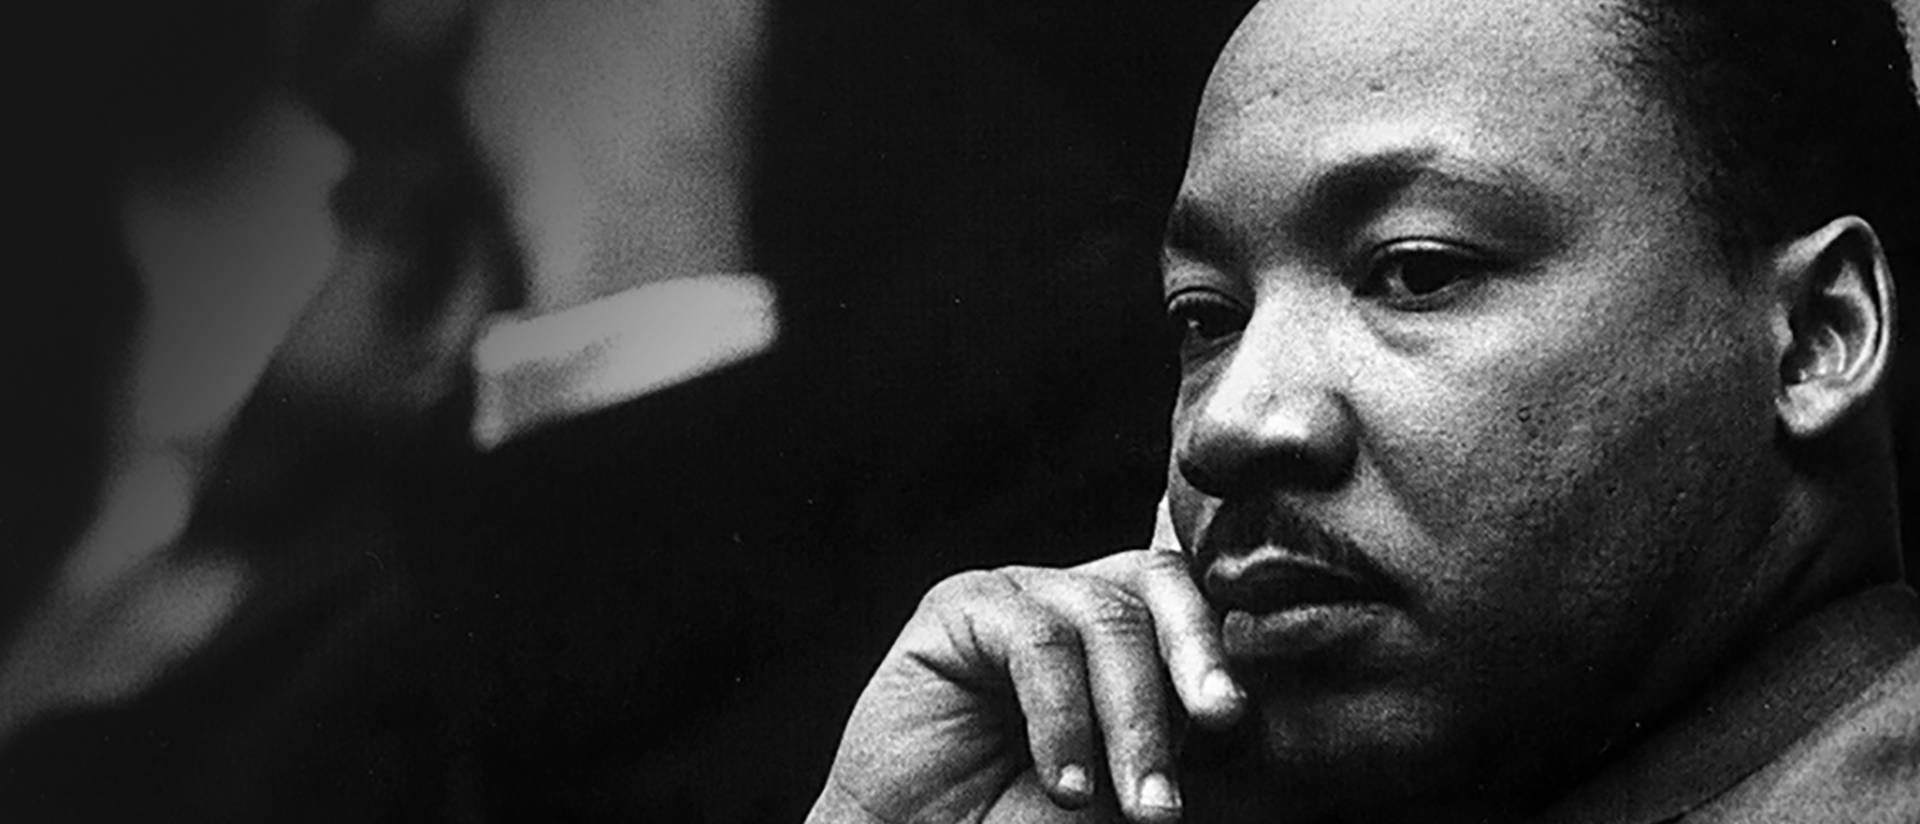 Chancellor's Blog: MLK's dream is alive and well